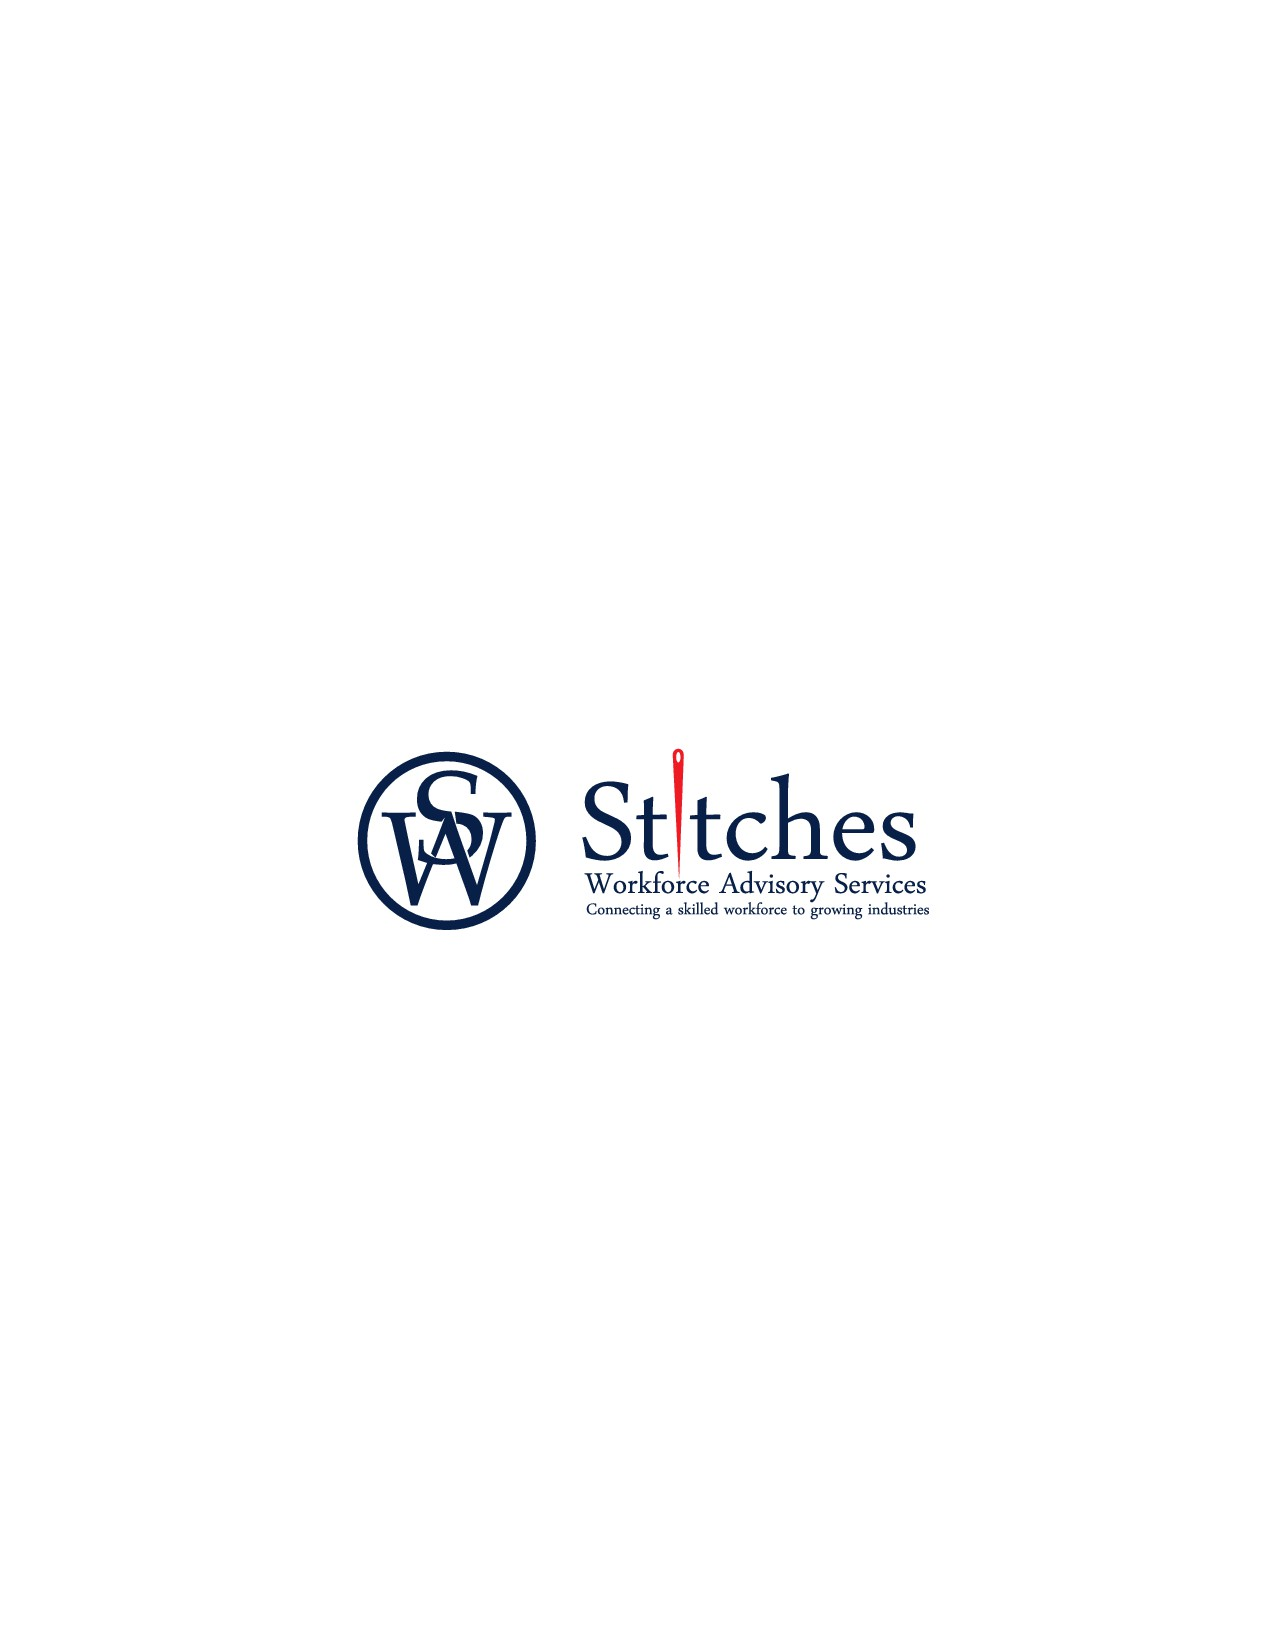 Design a fashionable logo for Stitches Workforce Advisory Services  -  we are changing lives